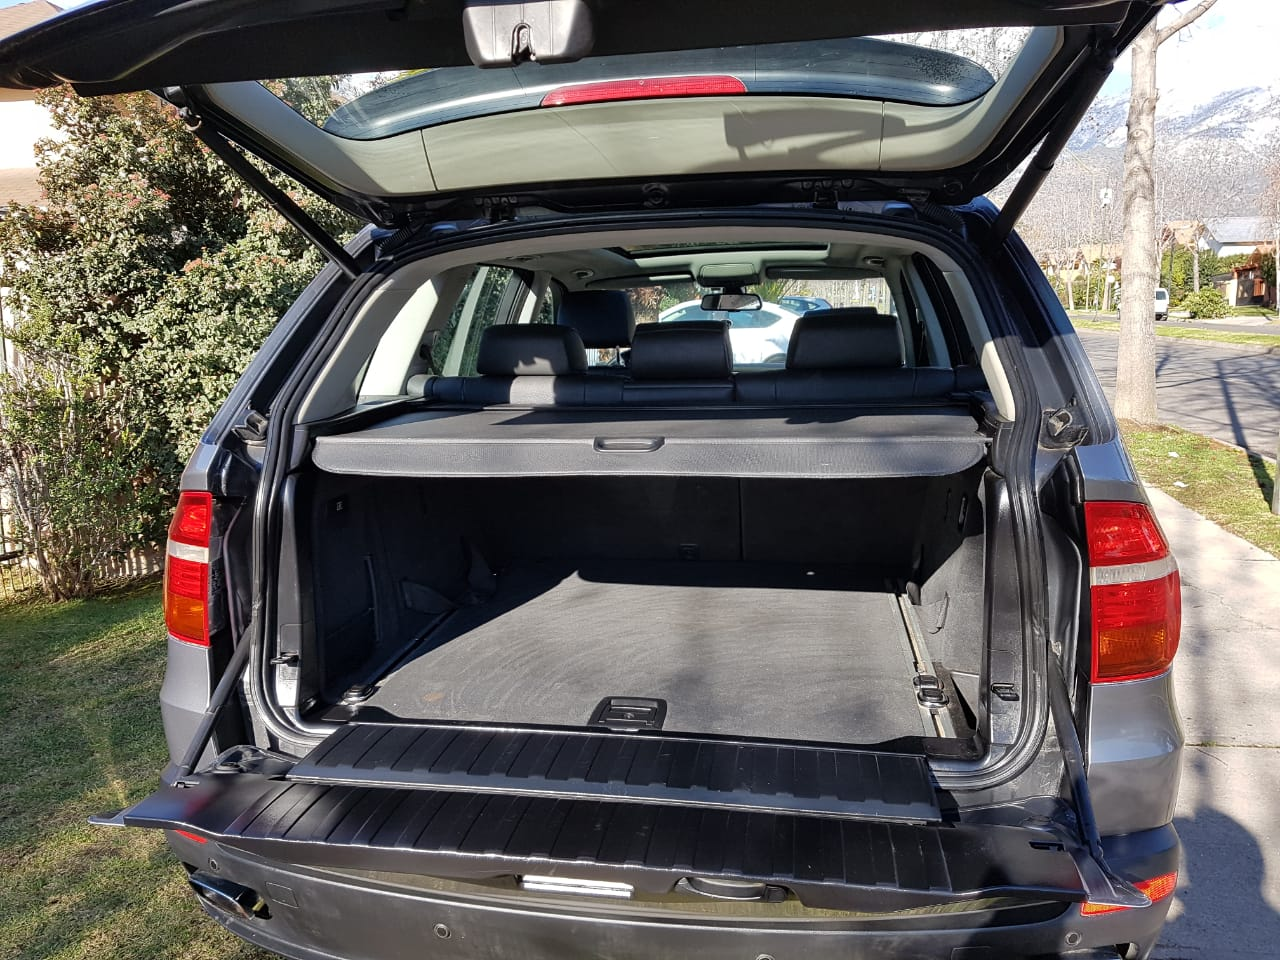 BMW X5 4.8 AT 4x4 año 2008